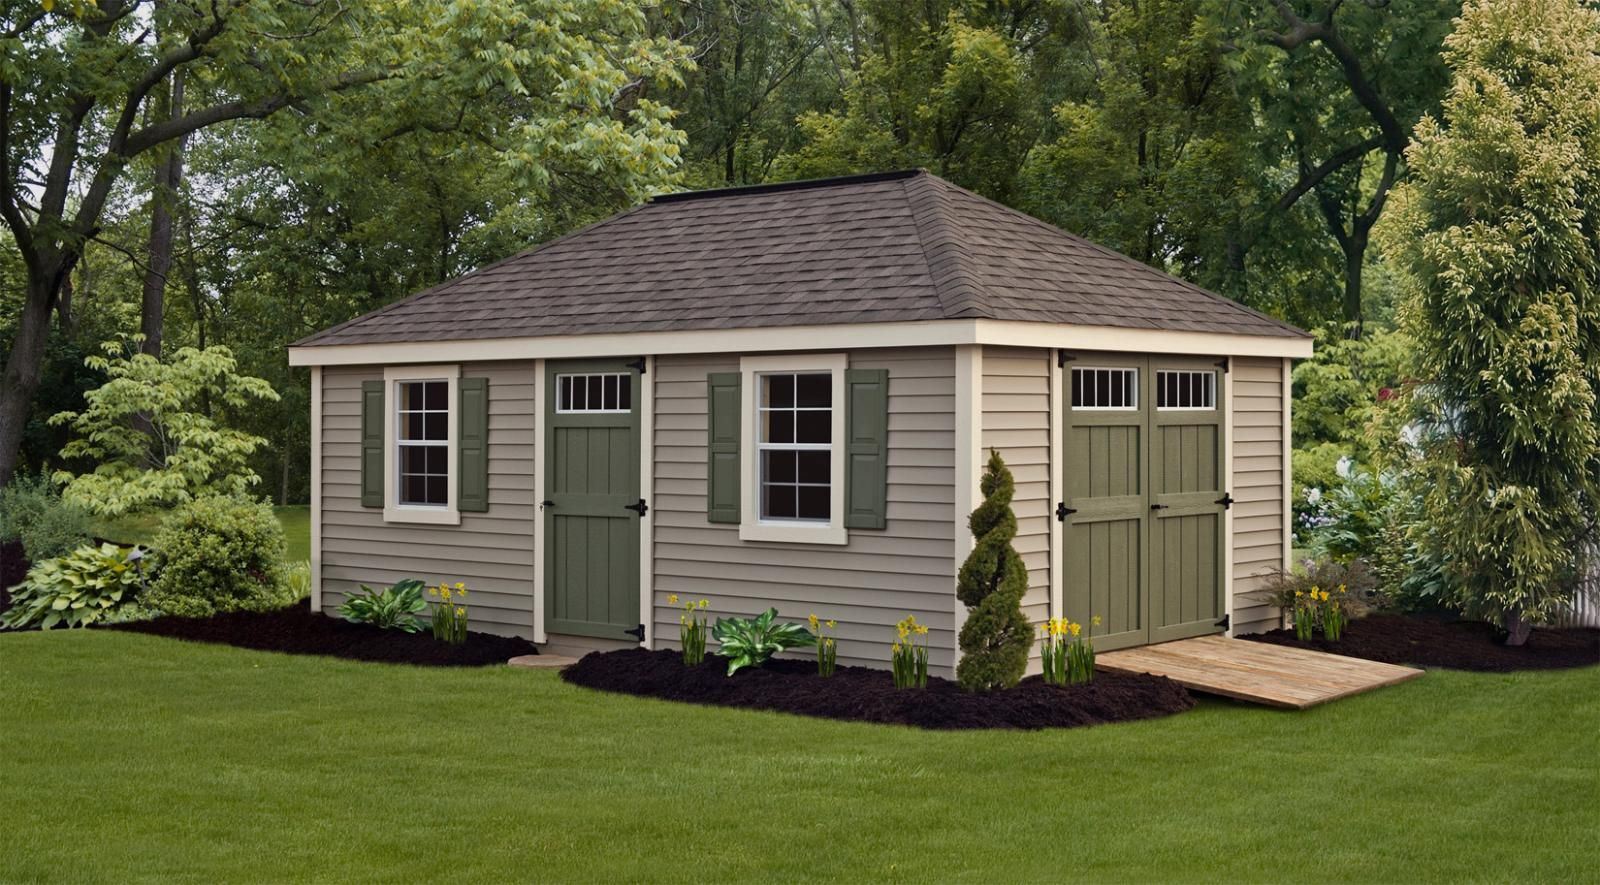 12x20 Garden Shed Villa Style By Northwood Industries In Mounds View Minnesota Green Shutters White Vinyl Siding Outdoor Sheds